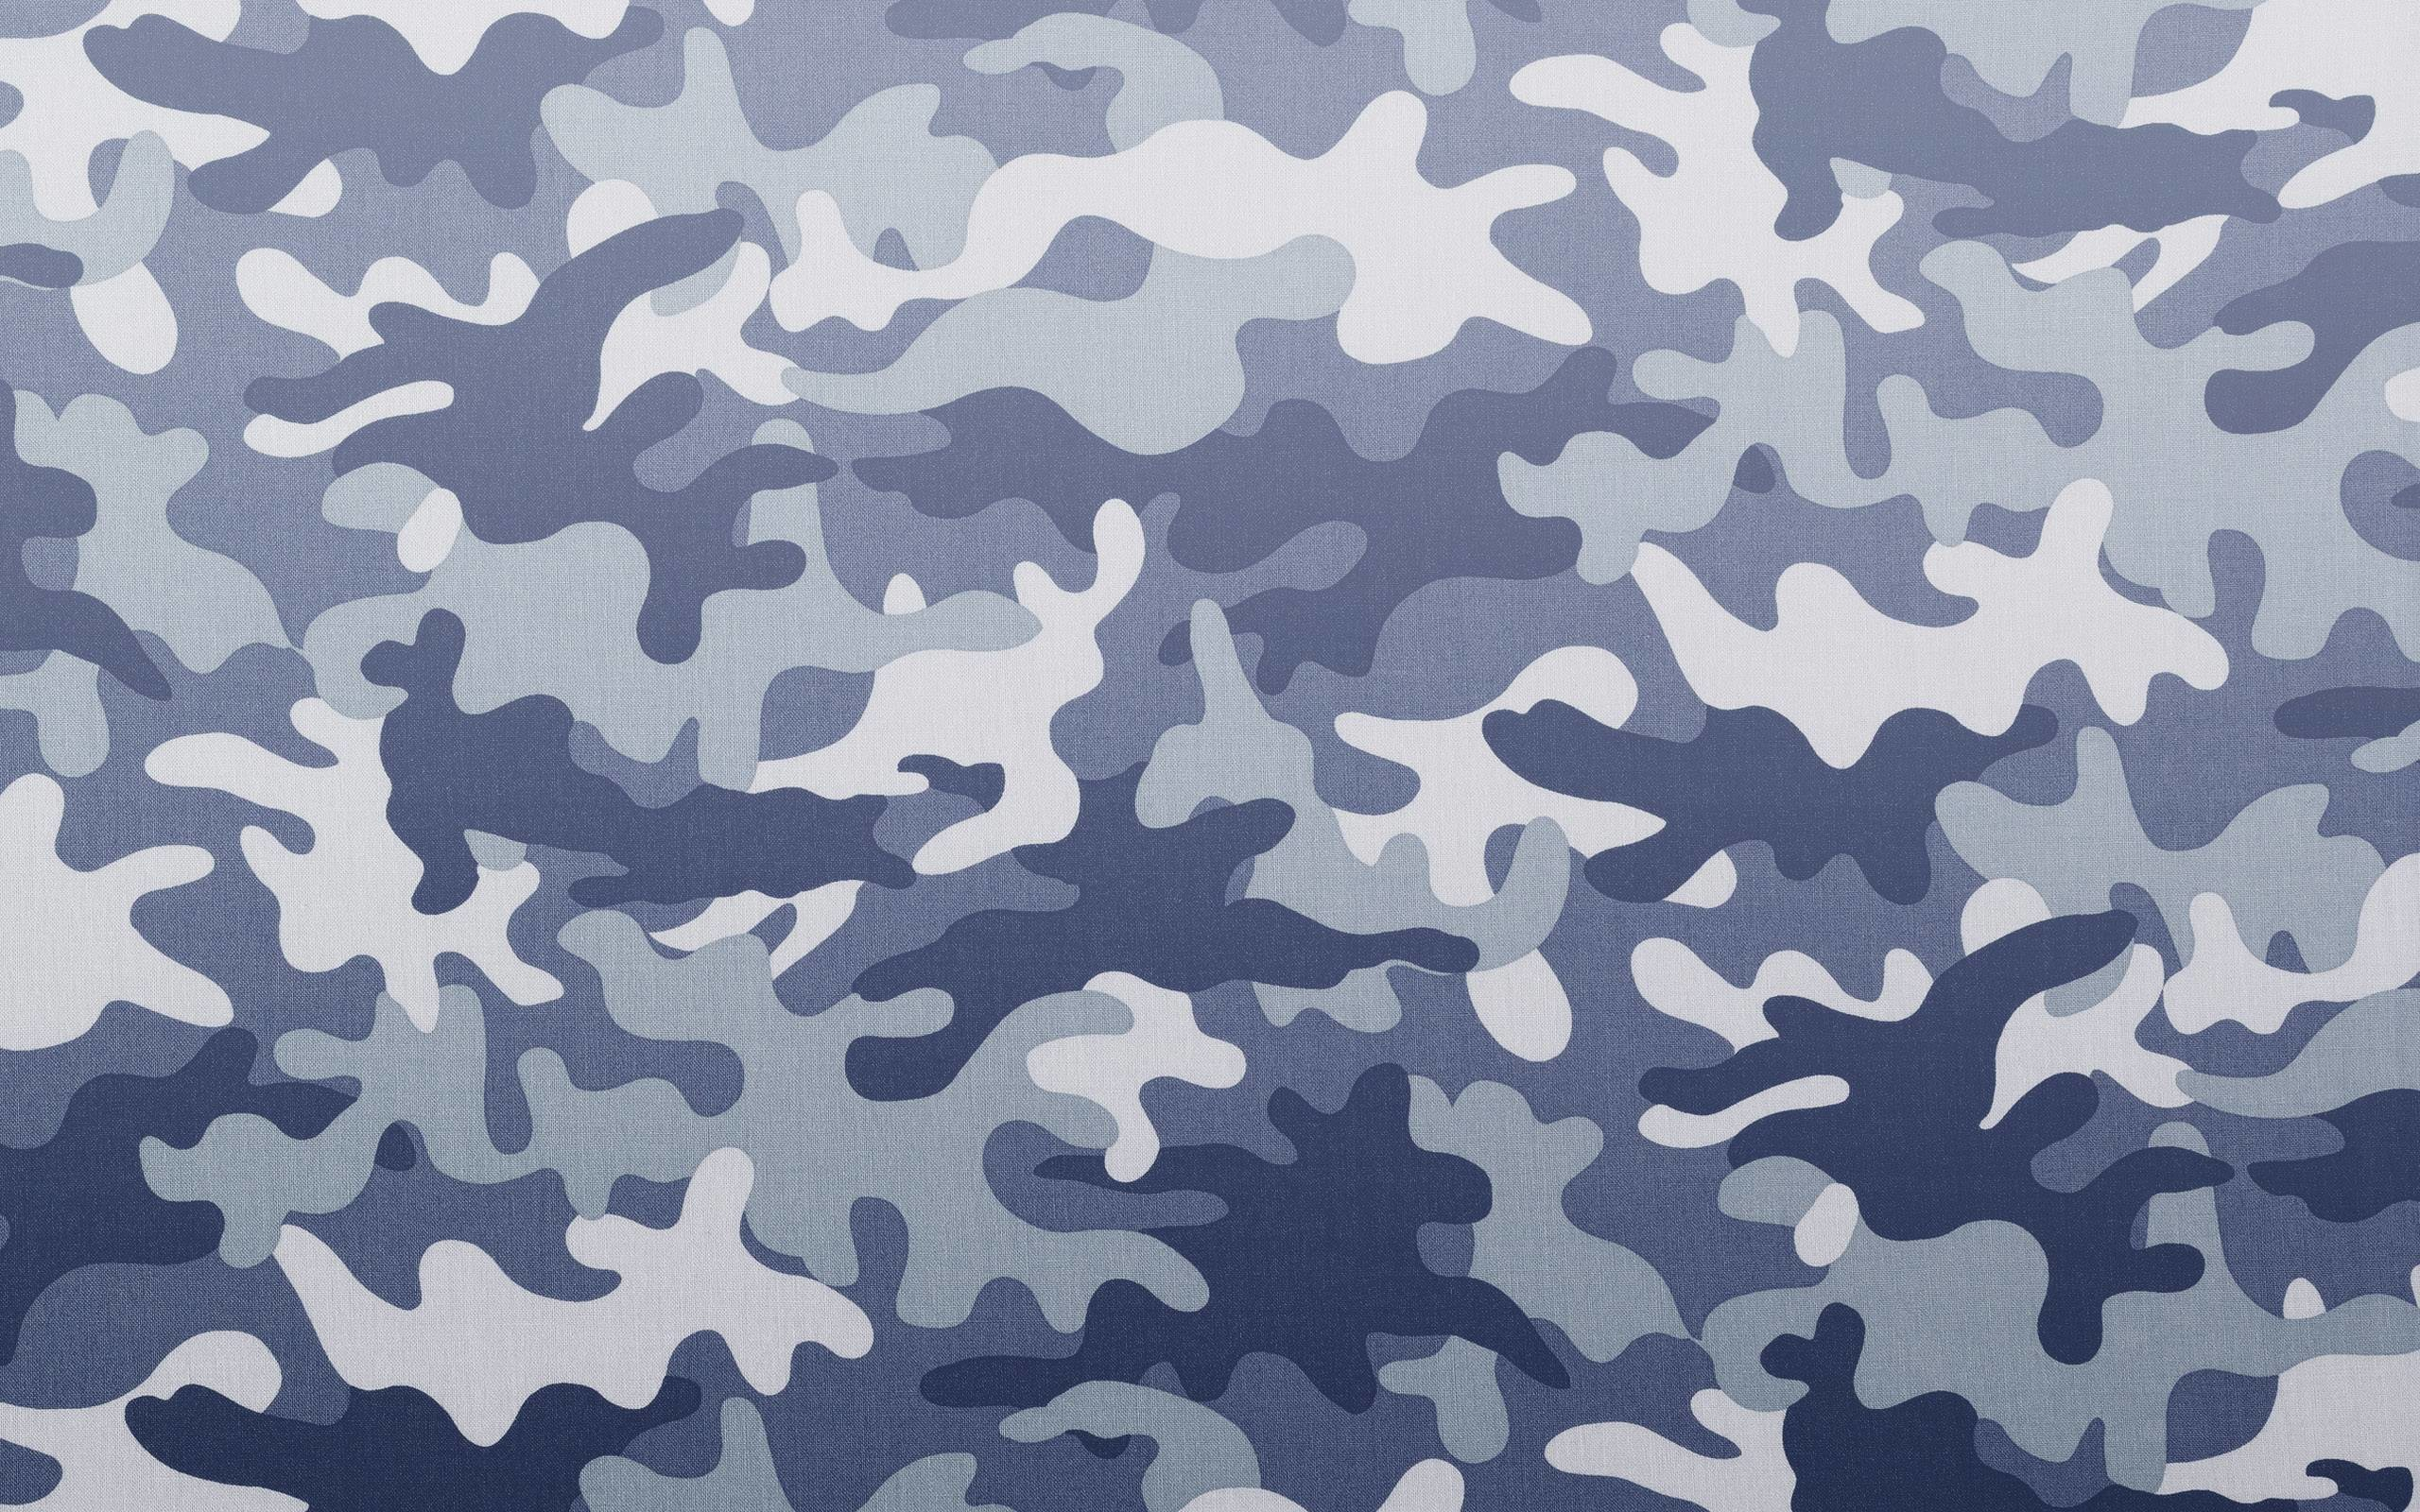 2560x1600 Wallpapers For > Digital Camo Wallpaper Iphone